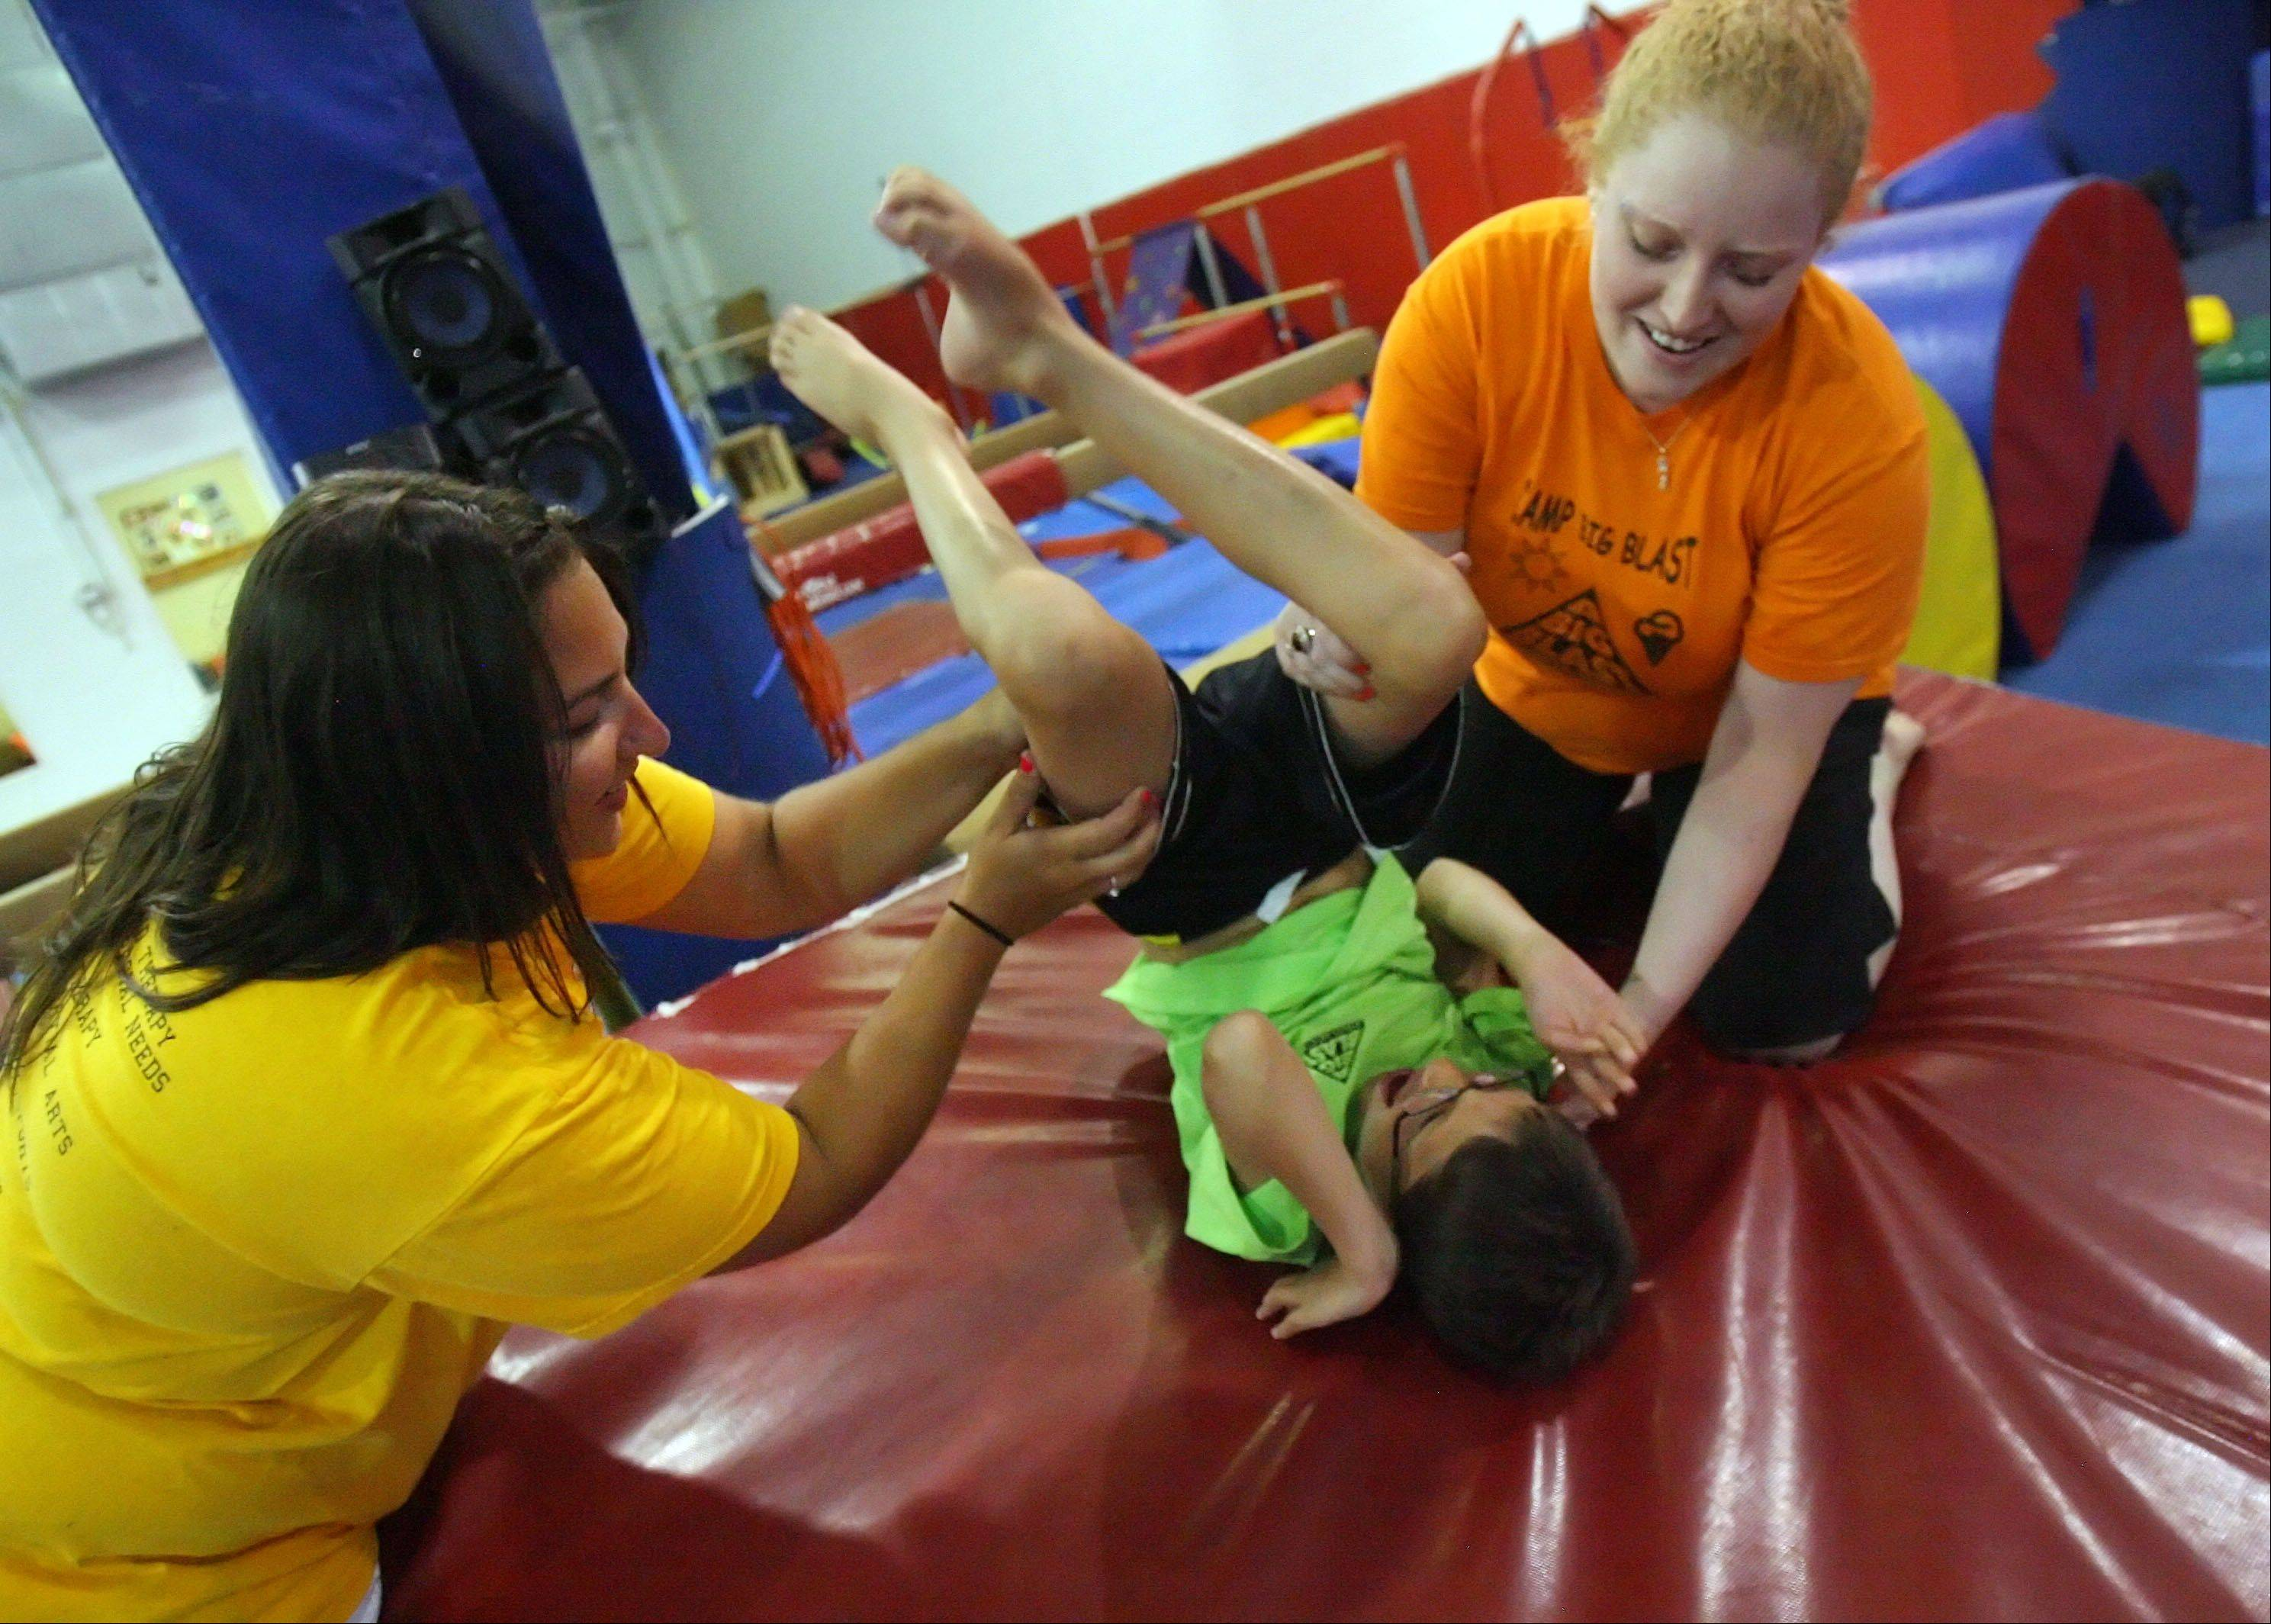 Steve LundyJanet Wadkins, left, director of A Big Blast Project and occupational therapist Melissa Deets help Colin Brown, 8 of Arlington Heights do a backward roll at the Gym Spot in Mundelein.